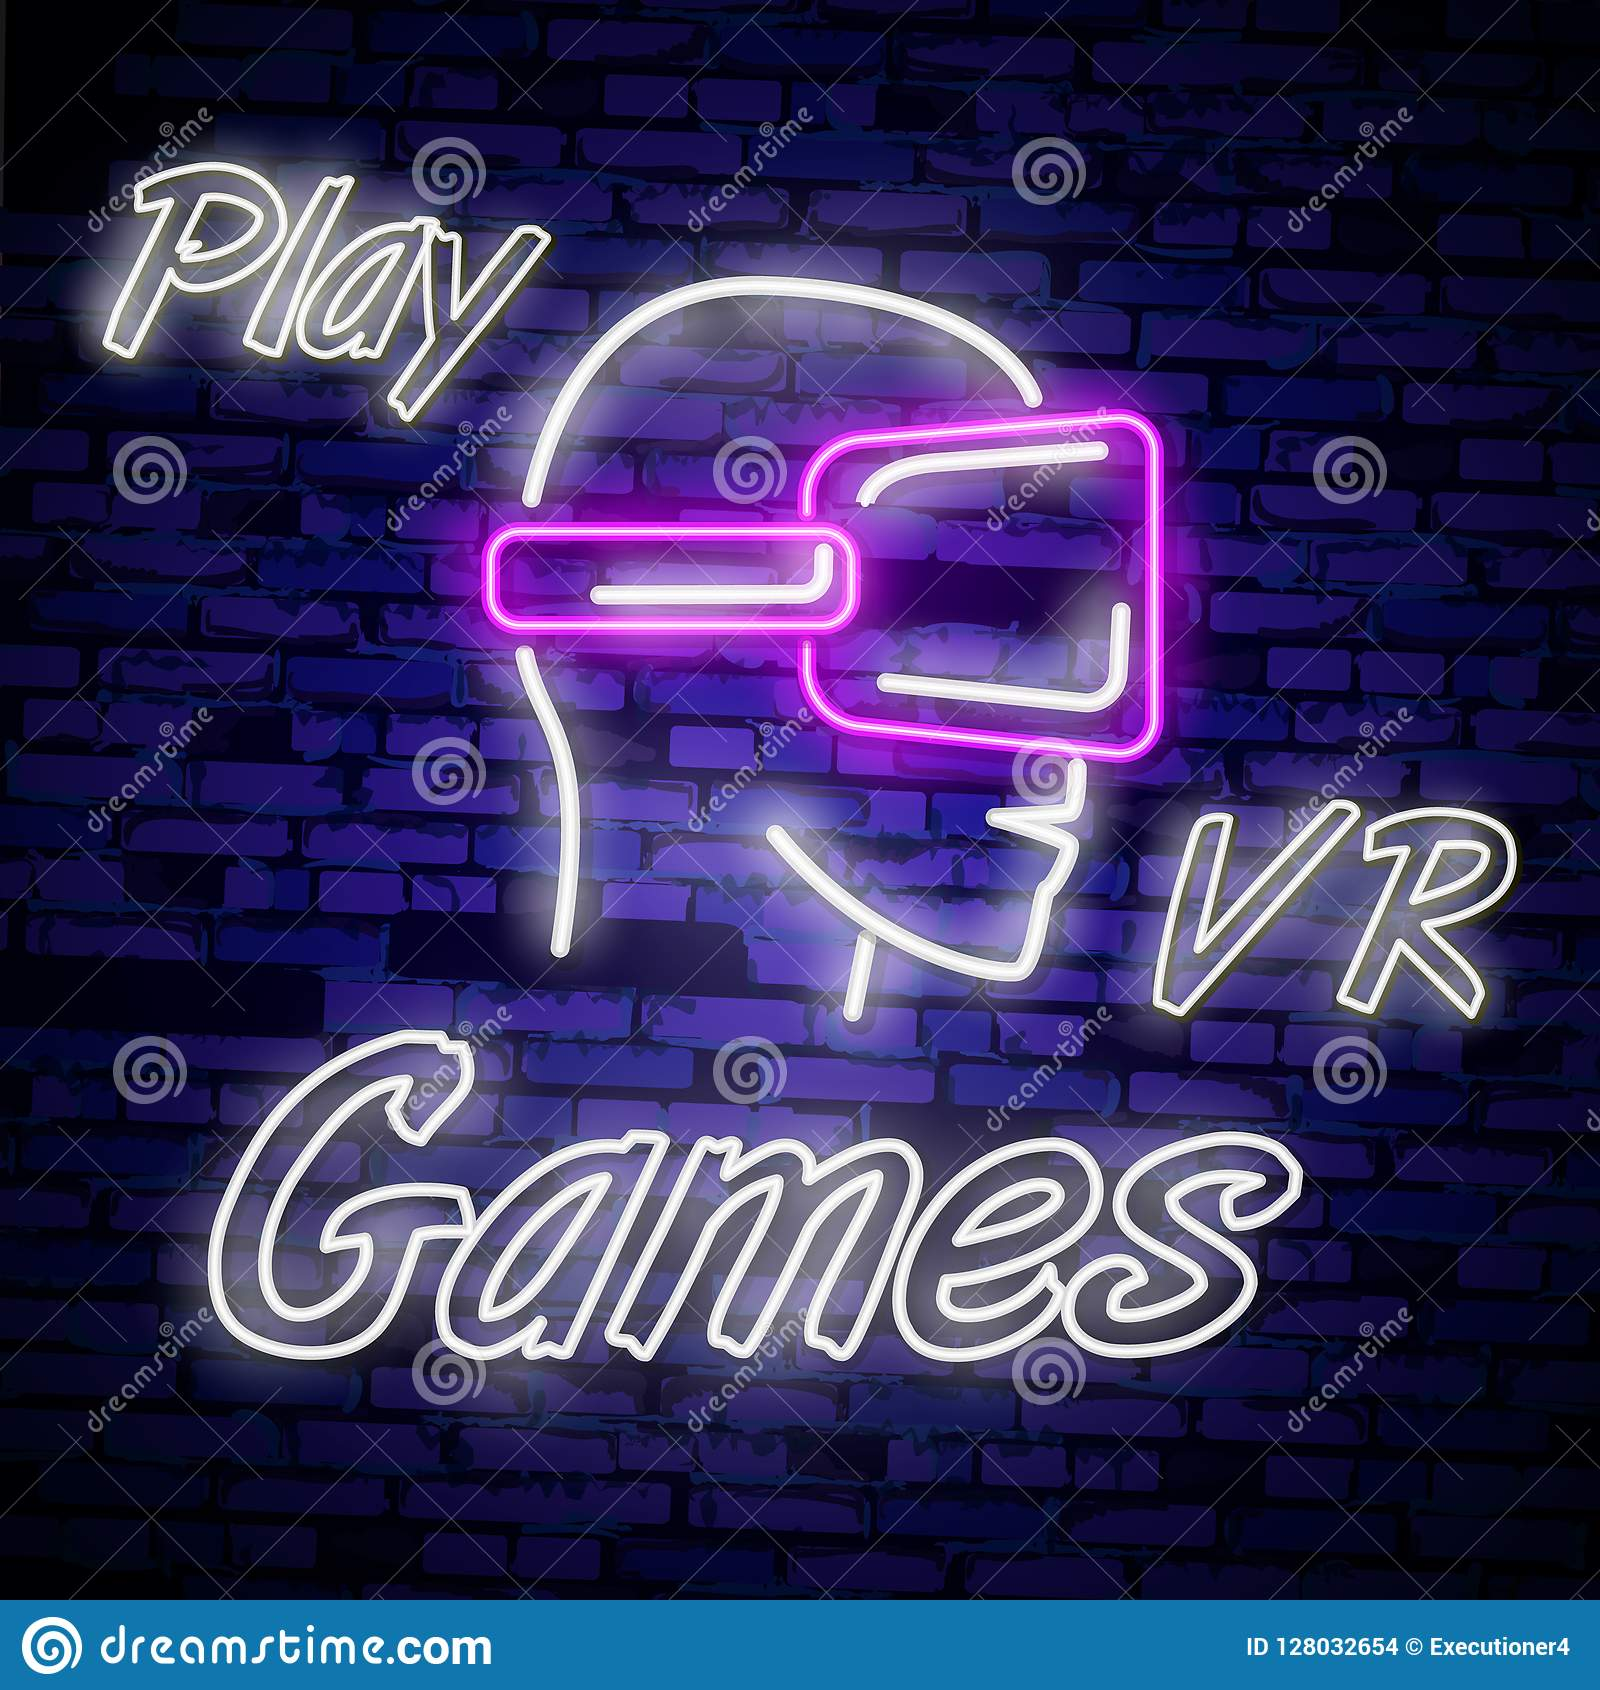 Video Games logos collection neon sign Vector design template. Conceptual Vr games, Retro Game night logo in neon style, gamepad i